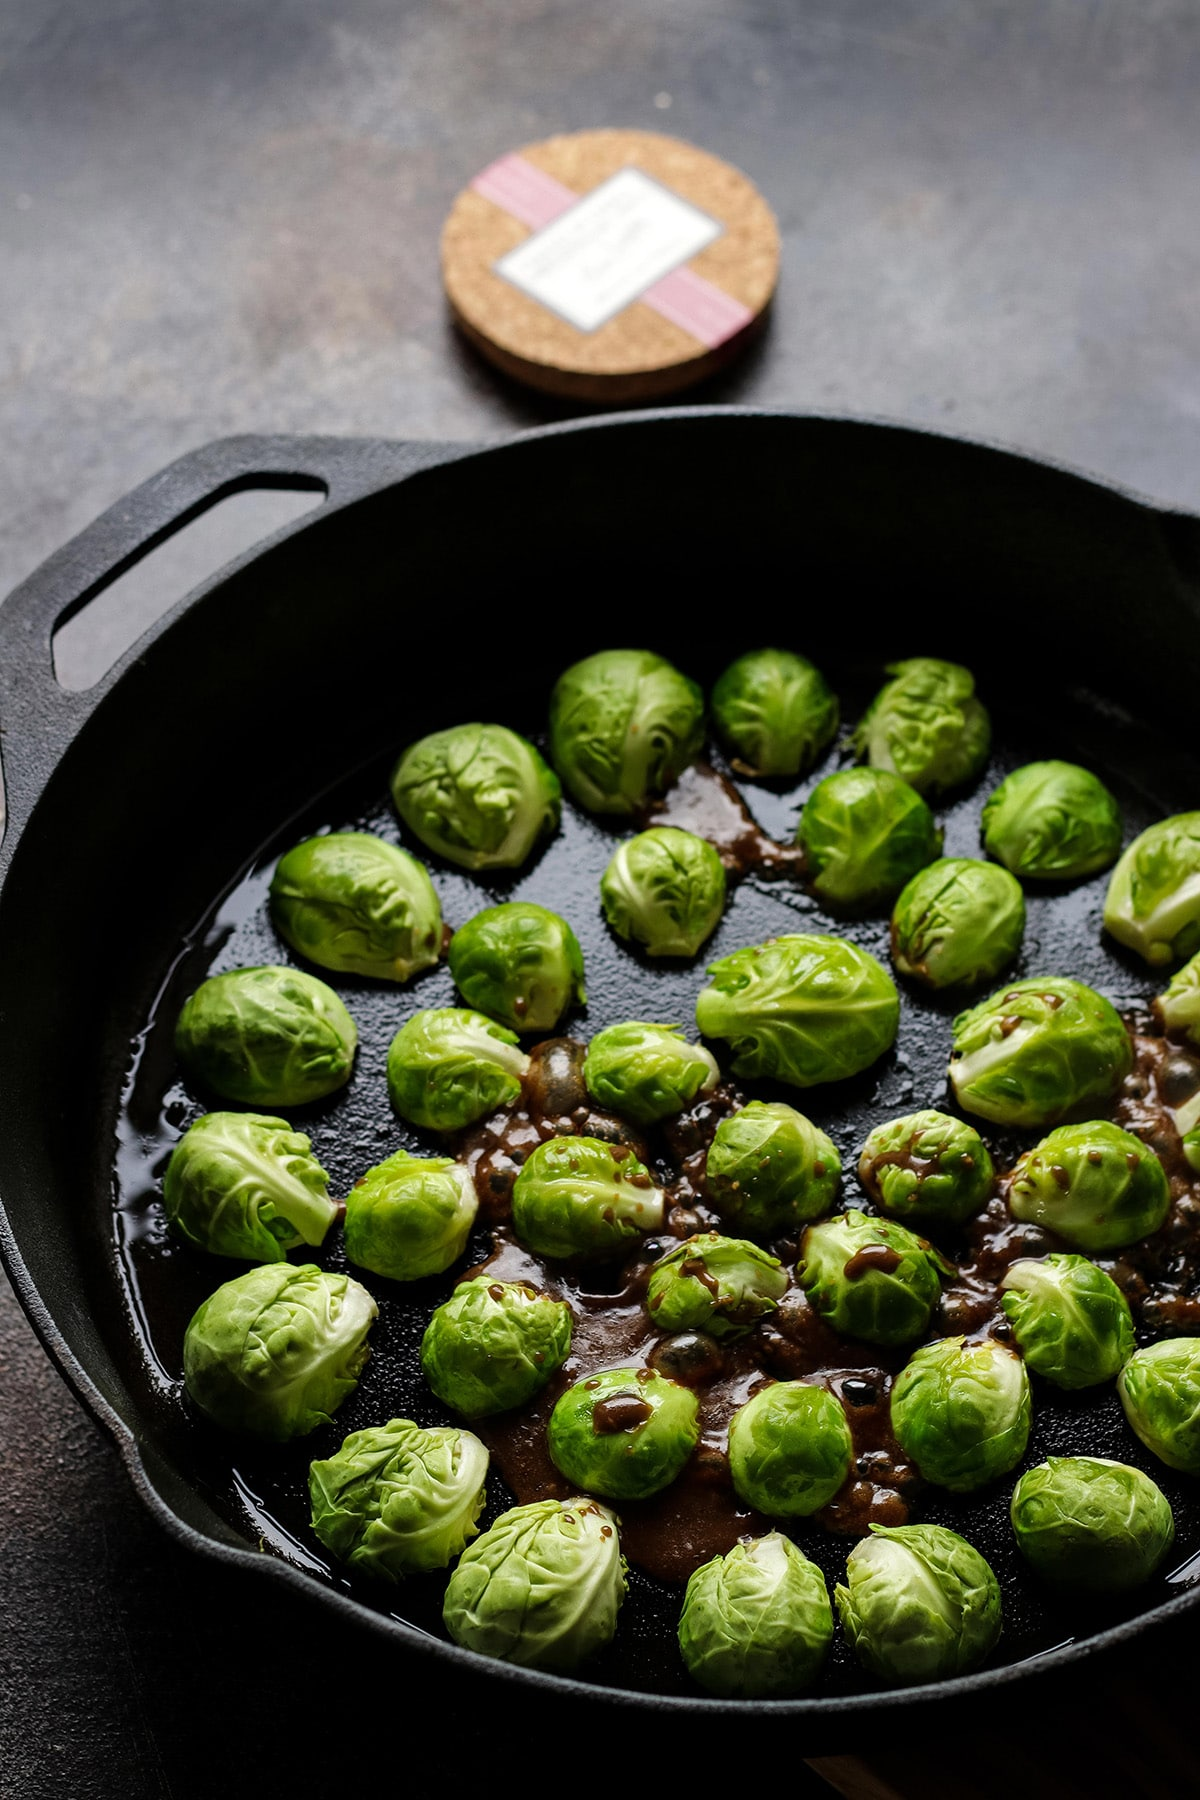 Adding Balsamic Glaze to Brussels Sprouts in a Skillet.